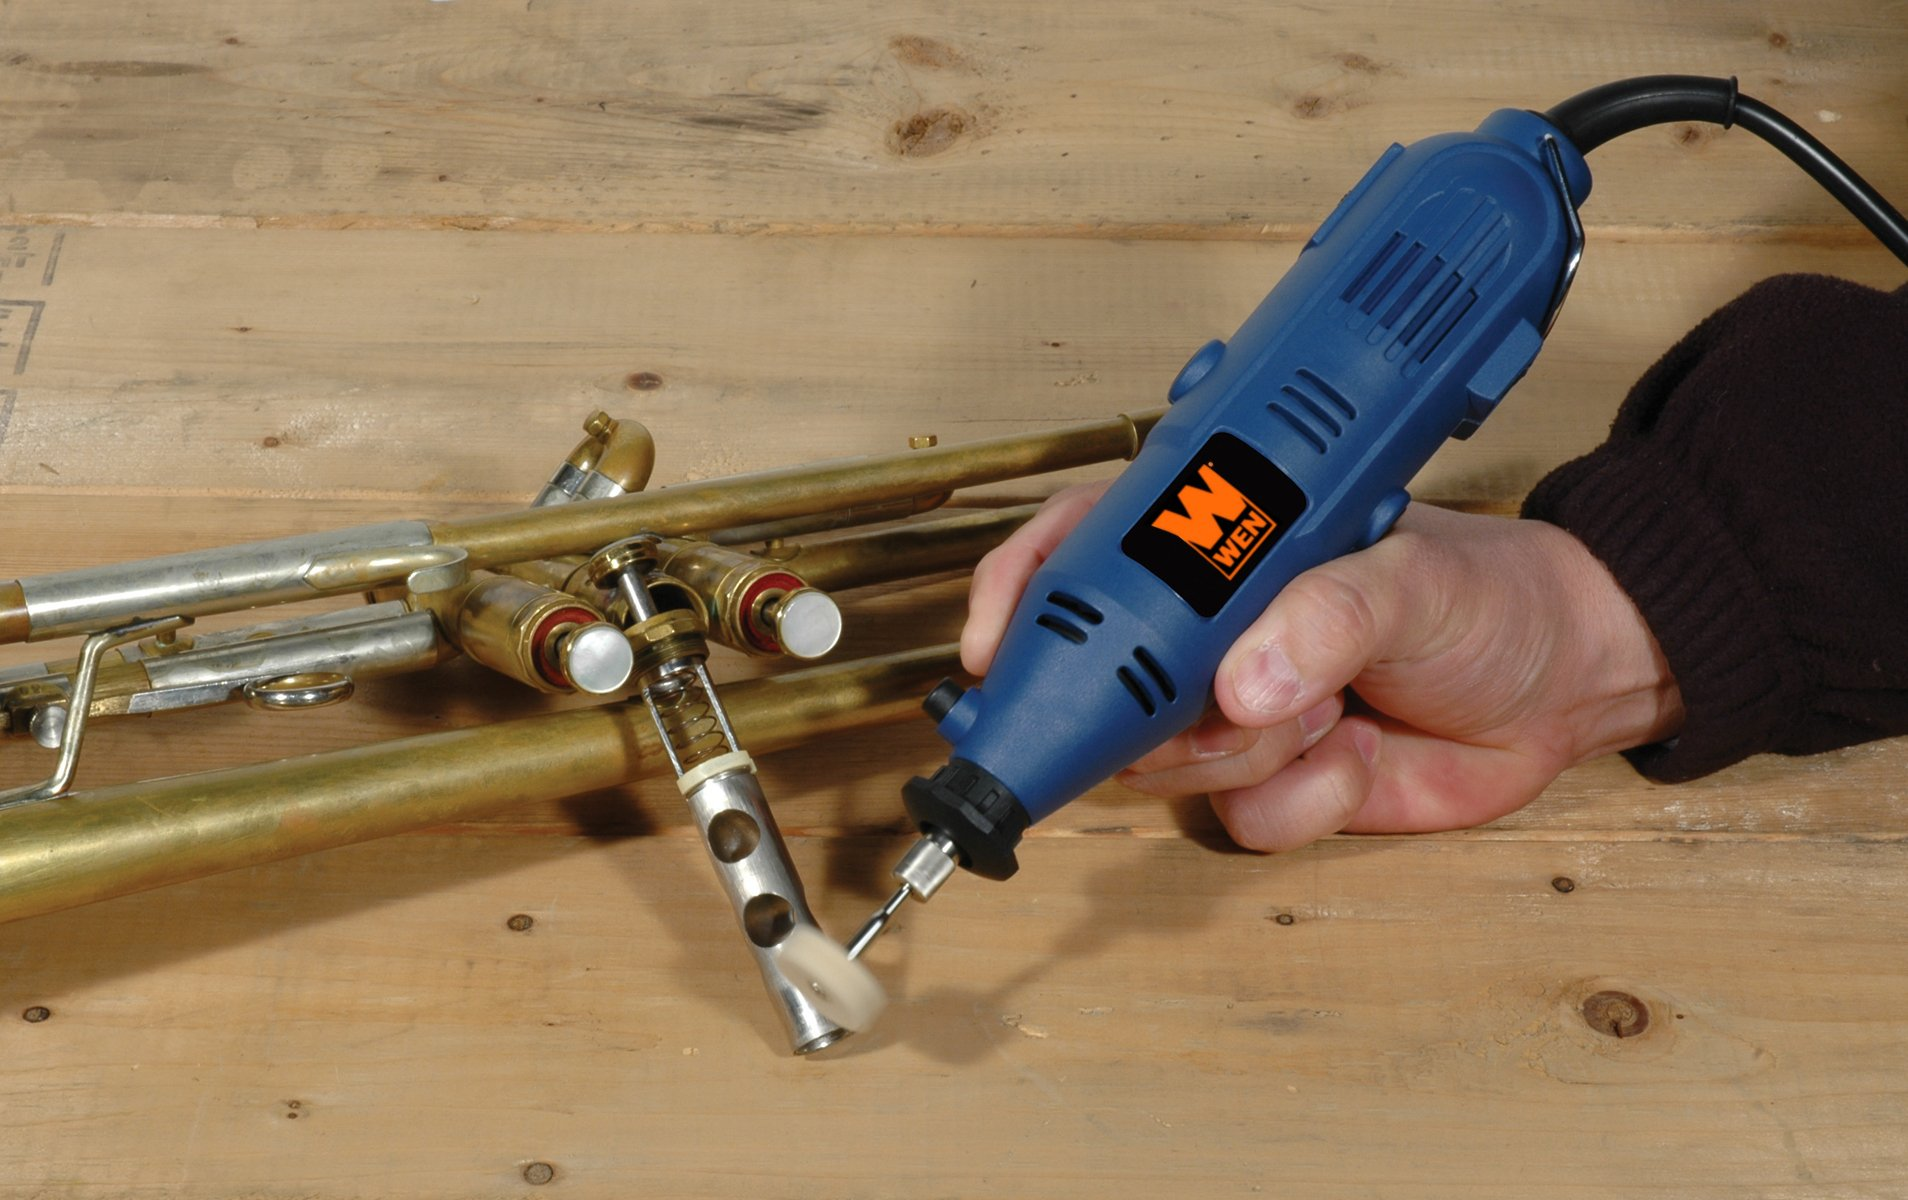 WEN 2305 Rotary Tool Kit with Flex Shaft by WEN (Image #6)